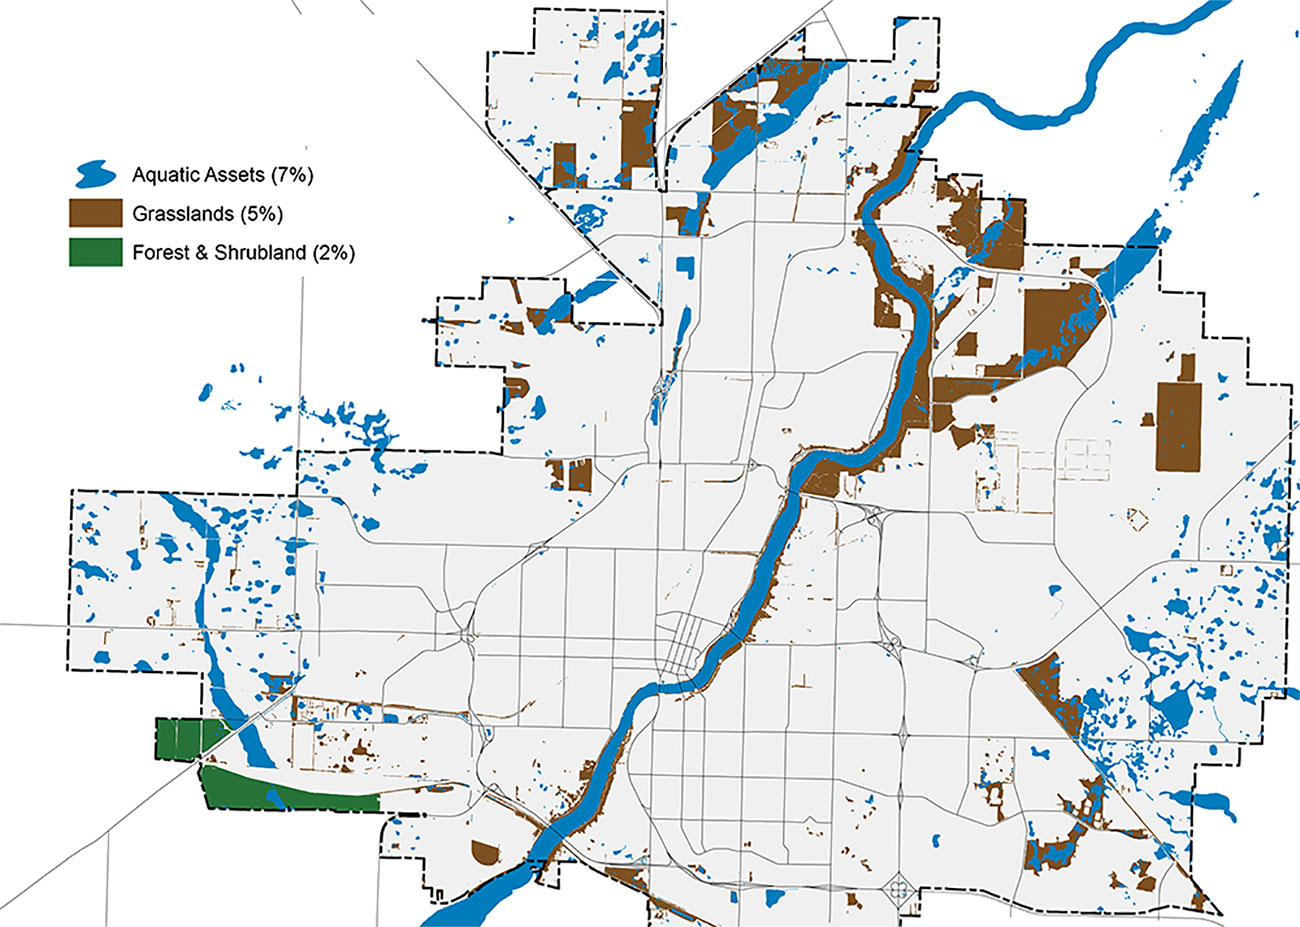 Aerial map of Saskatoon's city limits, broken down into individual neighbourhoods. The grey map features blue, brown, and green areas, representing aquatic assets, grasslands, and forests & shrubbery, respectively. Aquatic assets make up 7% of the map, grasslands make up 5%, and forests shrubbery make up 2%.